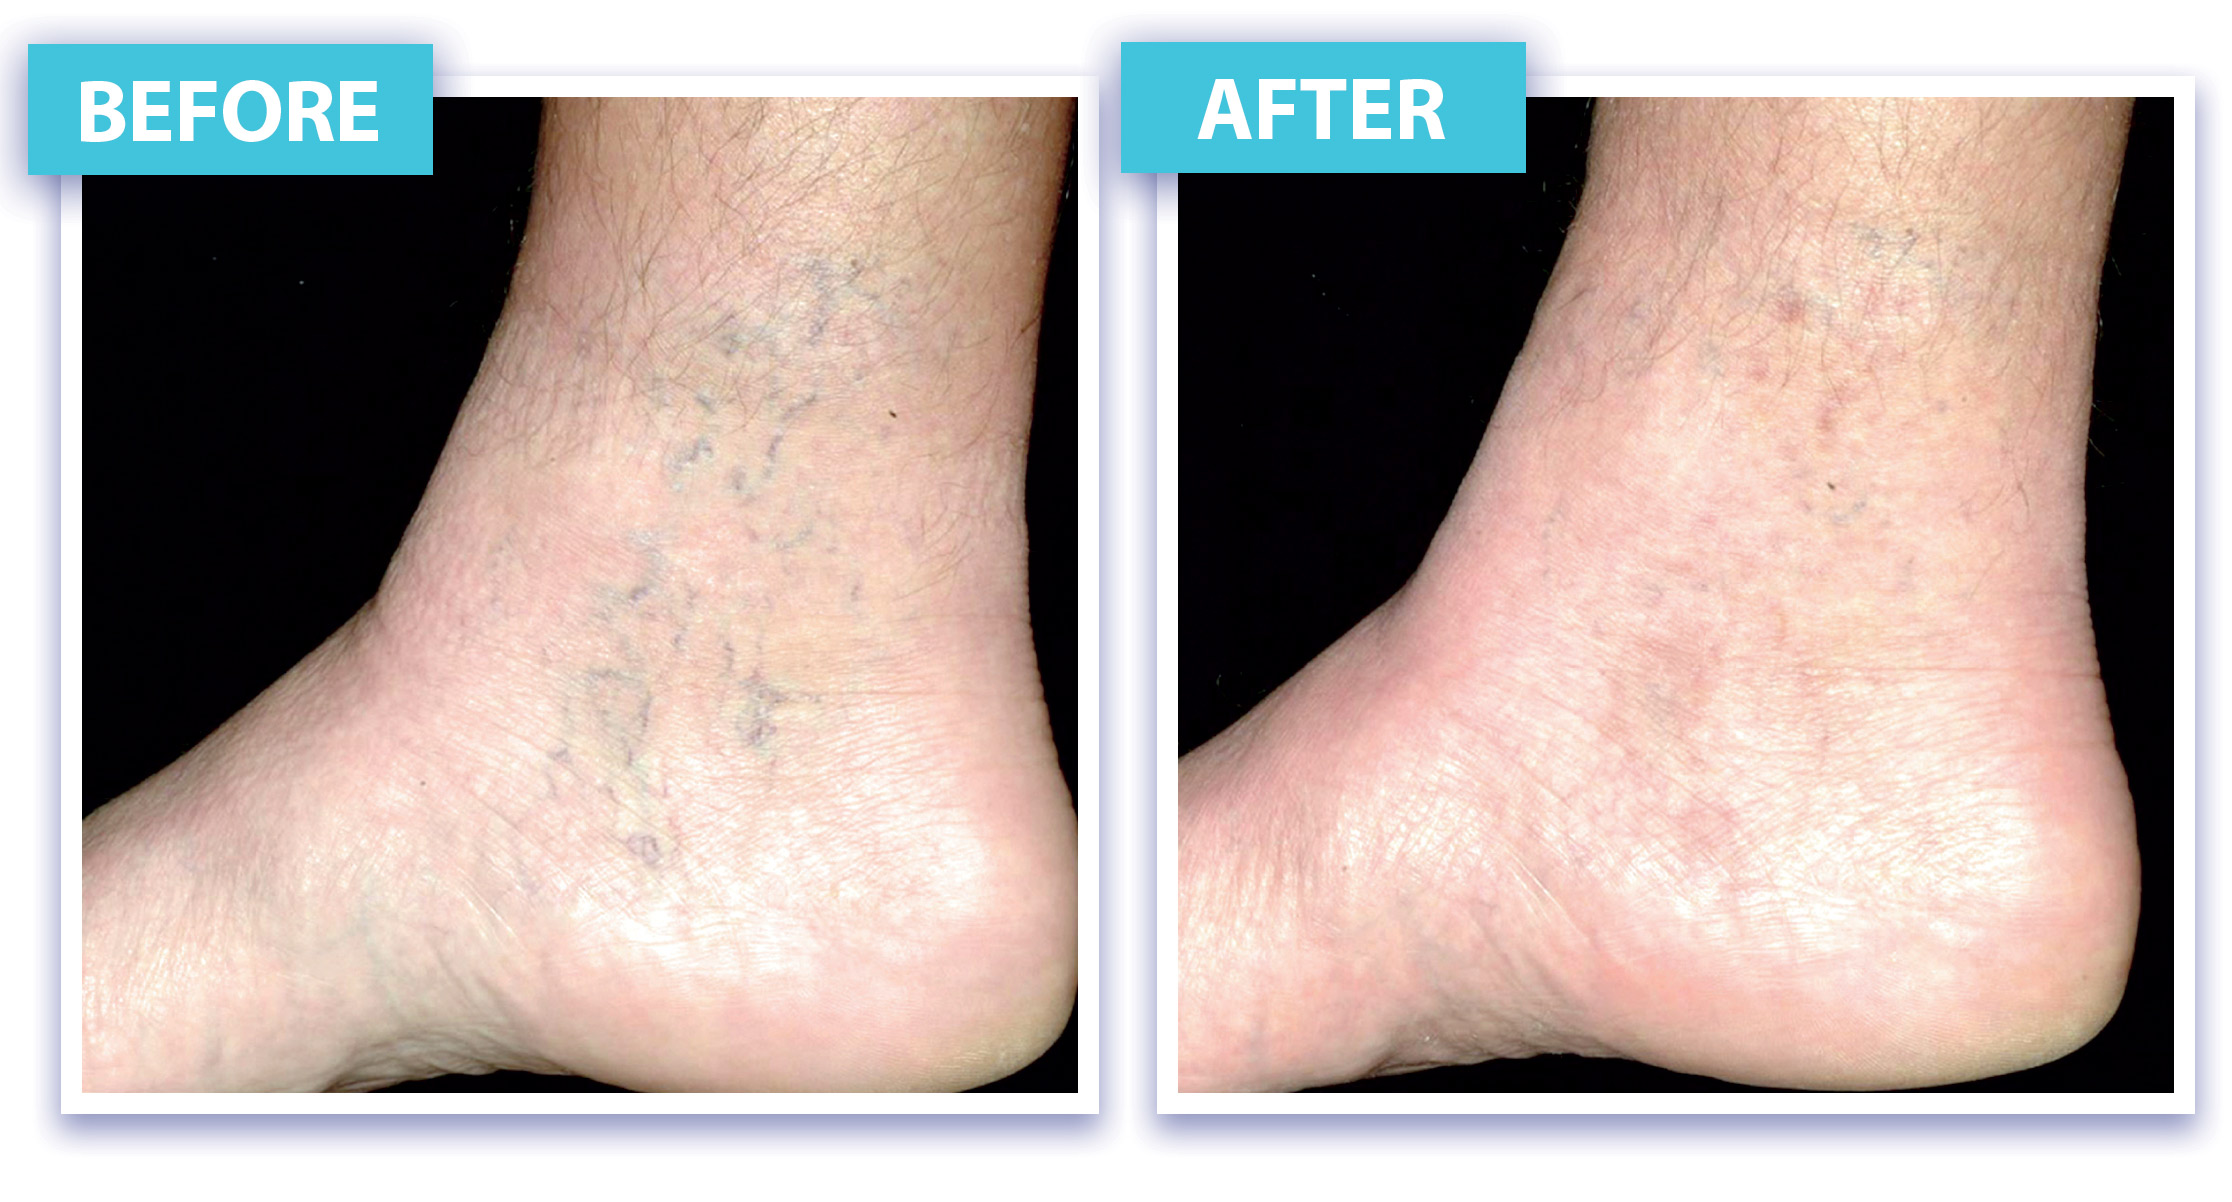 Before and After Laser Vein Removal